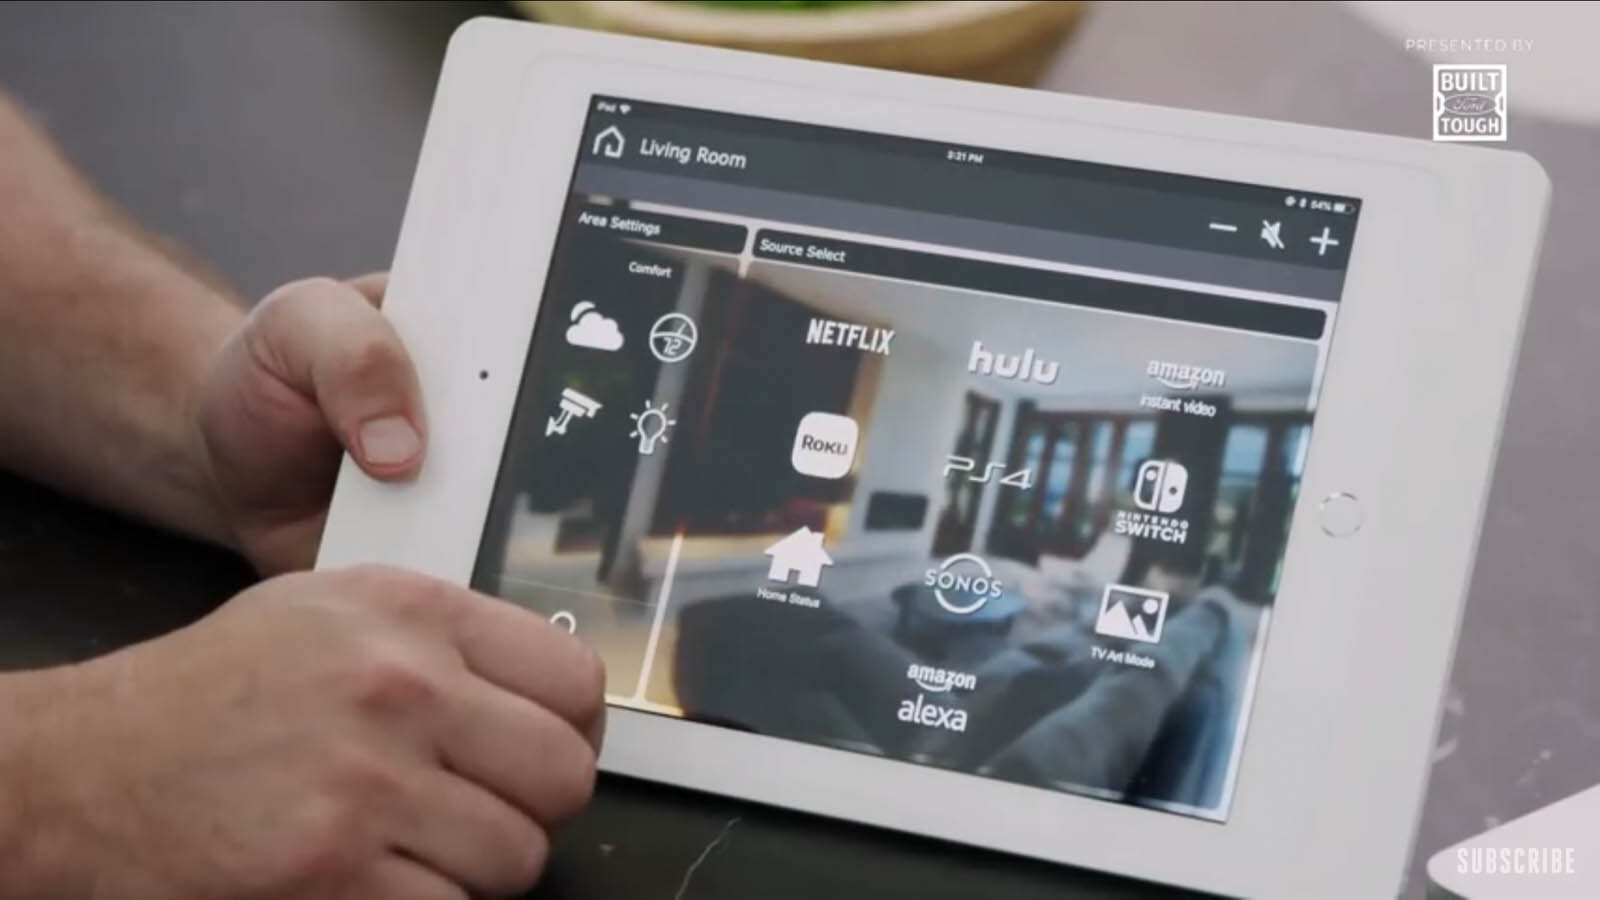 App control make home automation effortless - Navigate all the advanced features of your Austin Texas smart home with convenient ease of use. Your all in one smart app can be used both inside and away from your home system.